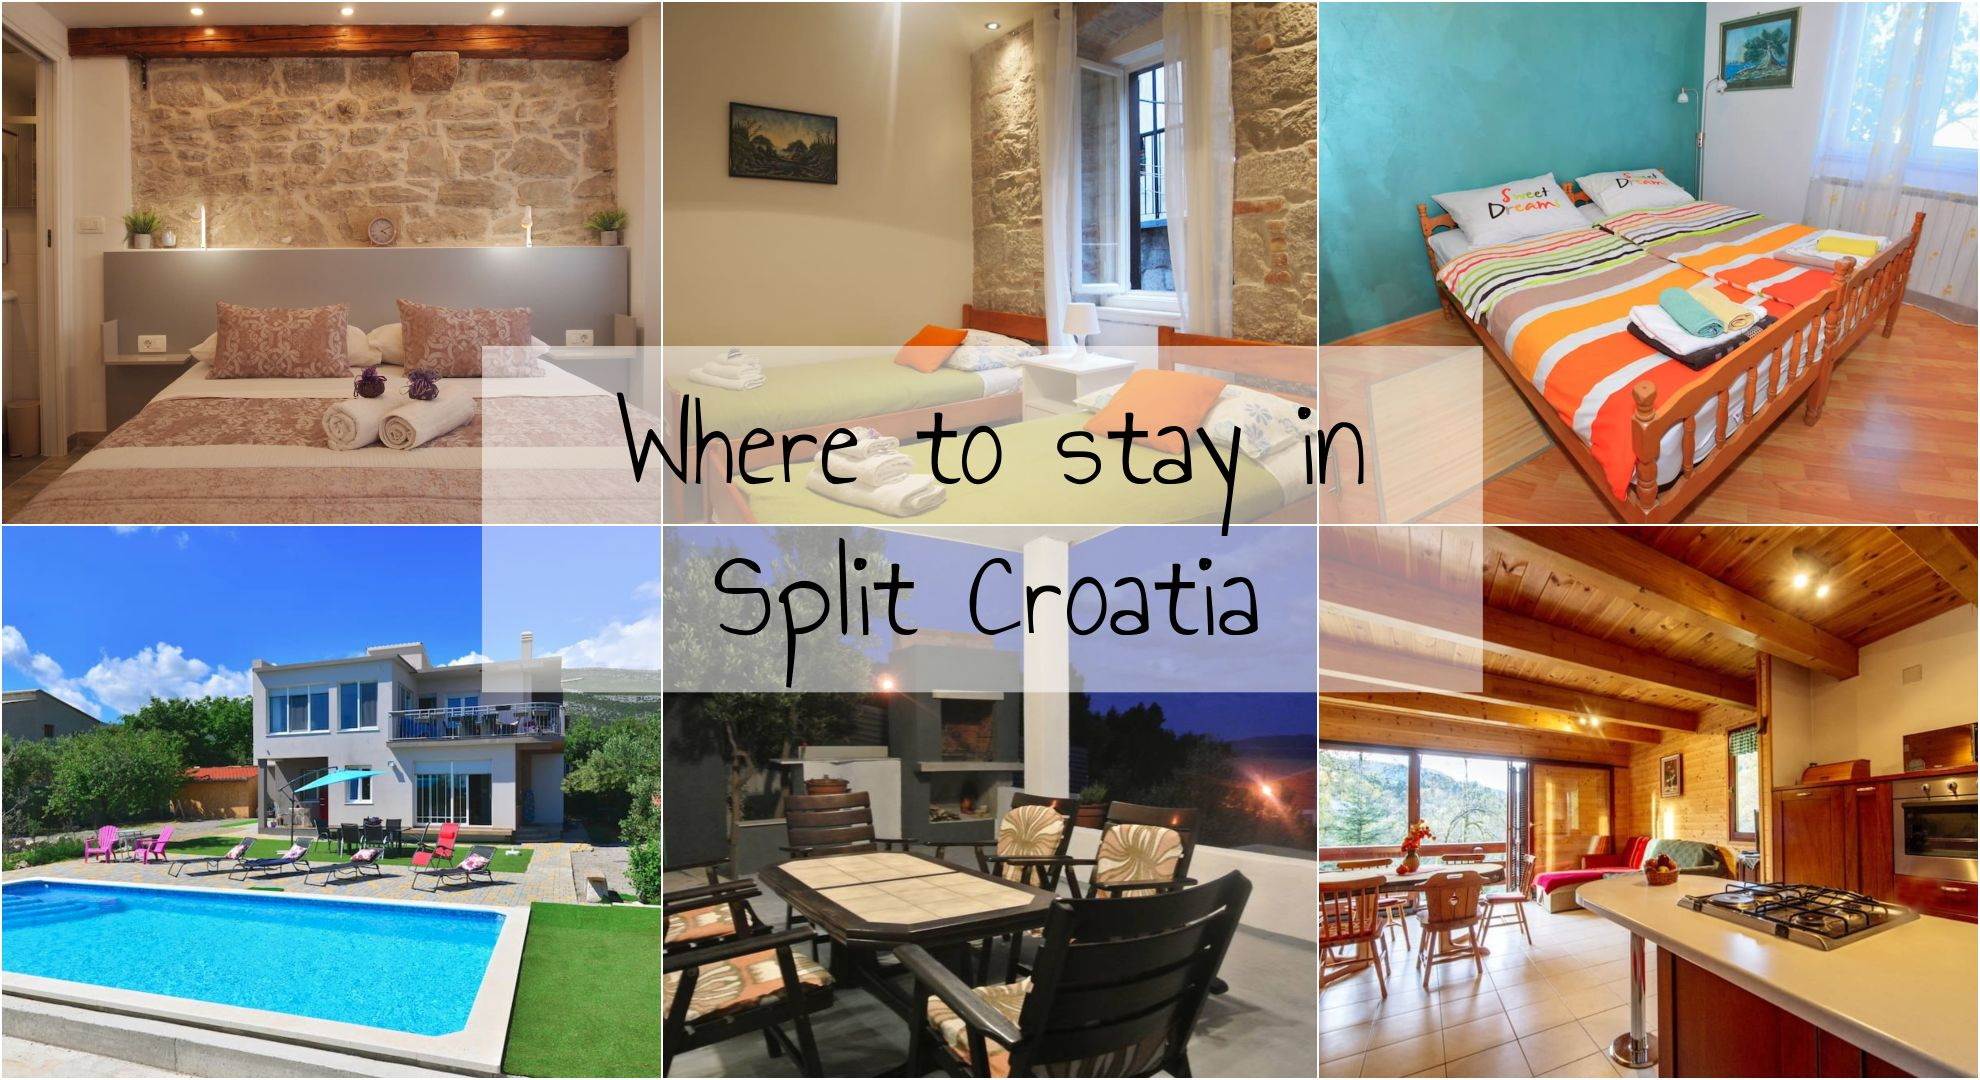 Where to stay in Split Croatia